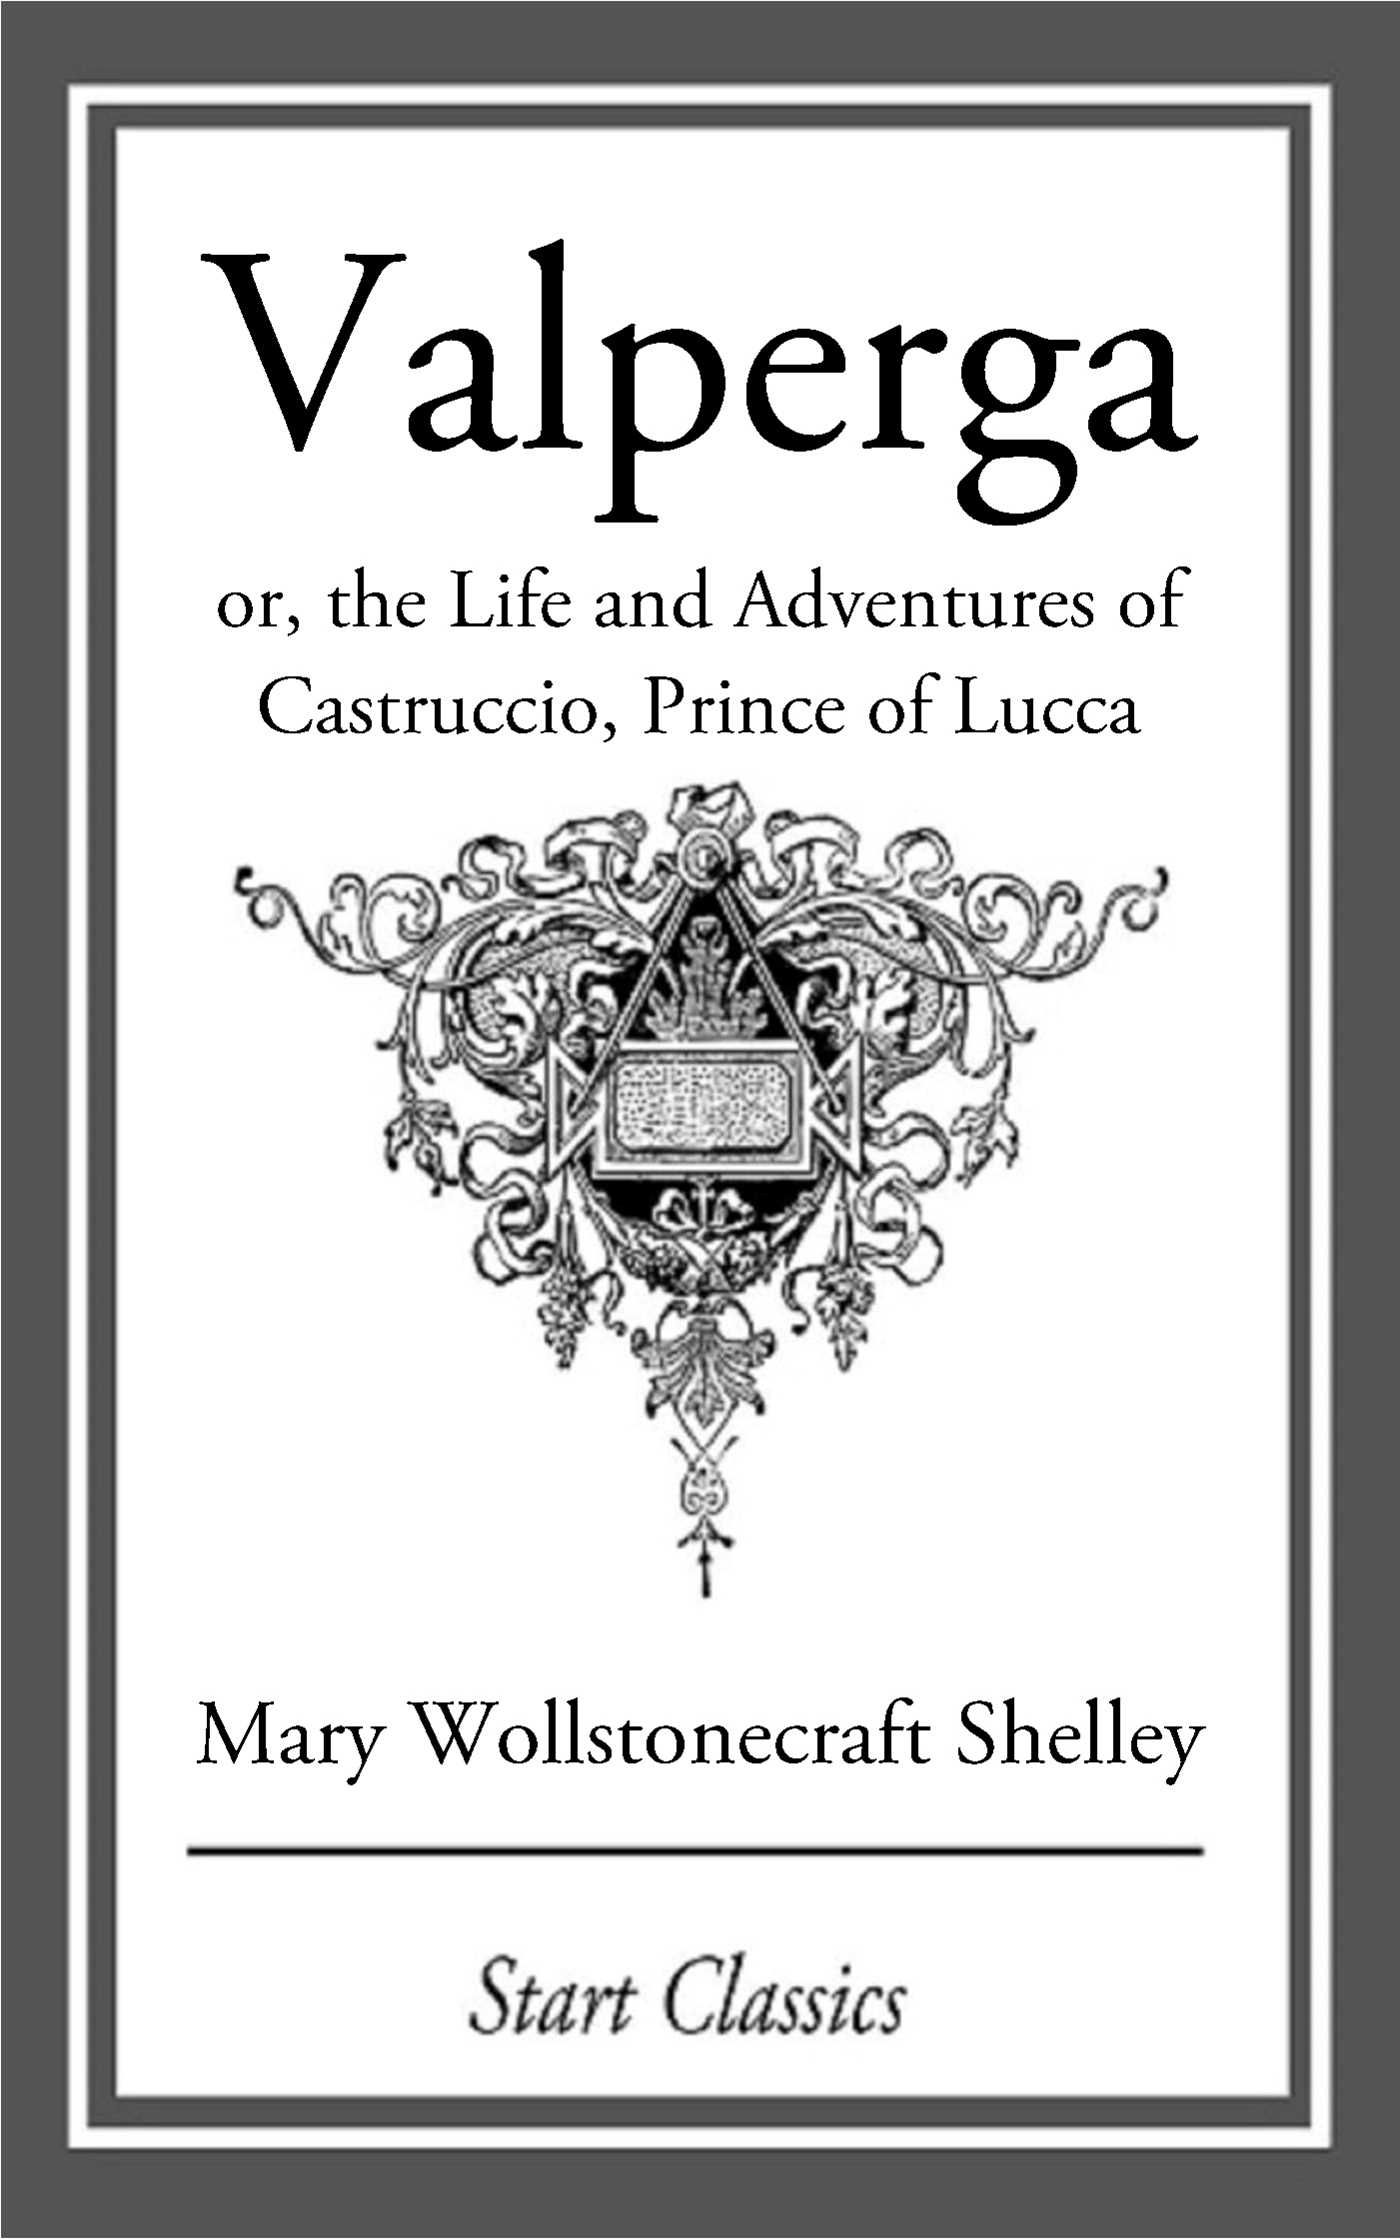 Valperga, or, The life and adventures of Castruccio, Prince of Lucca